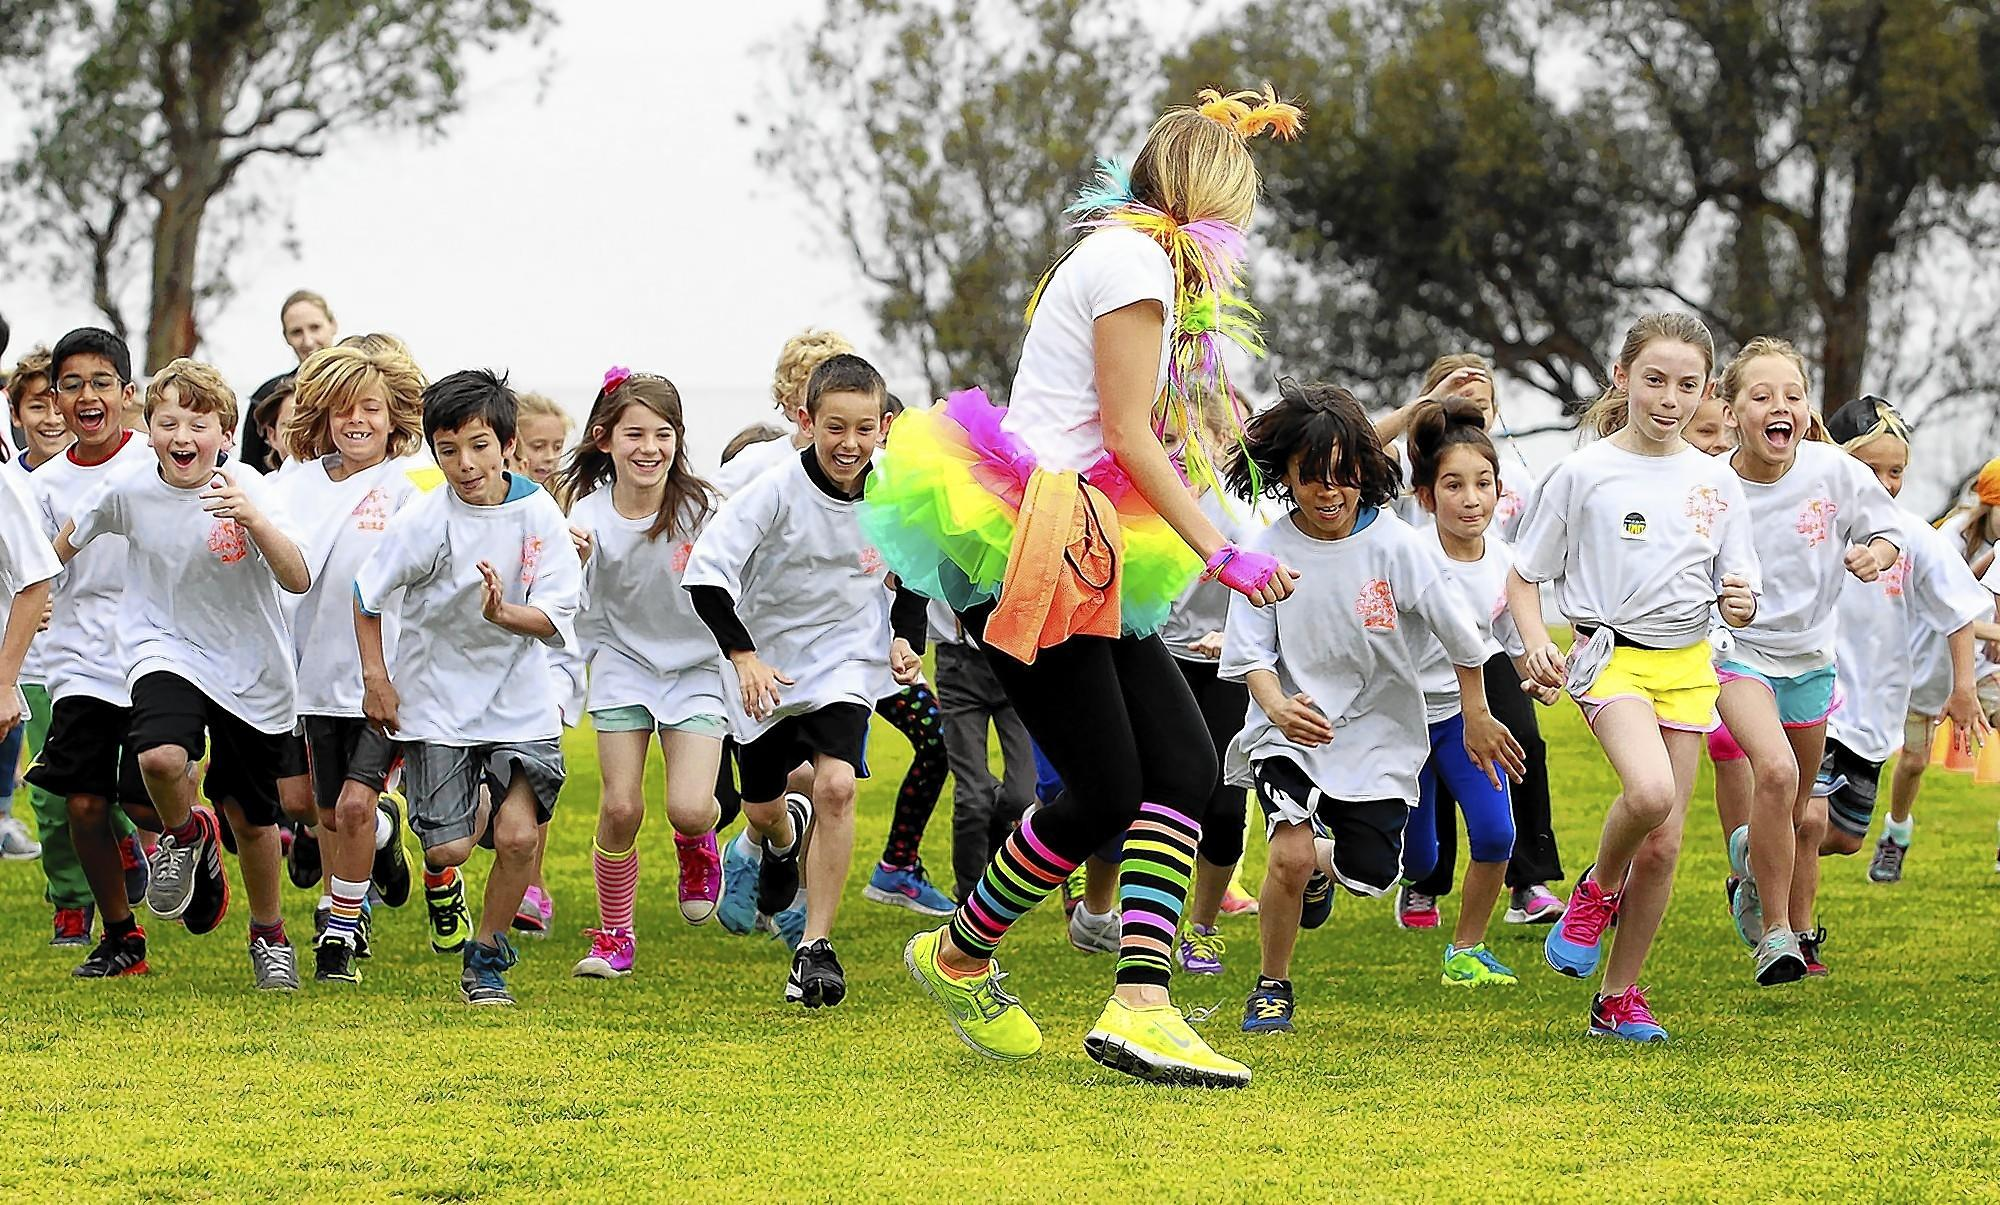 PTA volunteer Gorjana Reidel gets caught up in the start of the third-grade run as kids take off during the annual Top of the World jog-a-thon fundraiser on Friday.